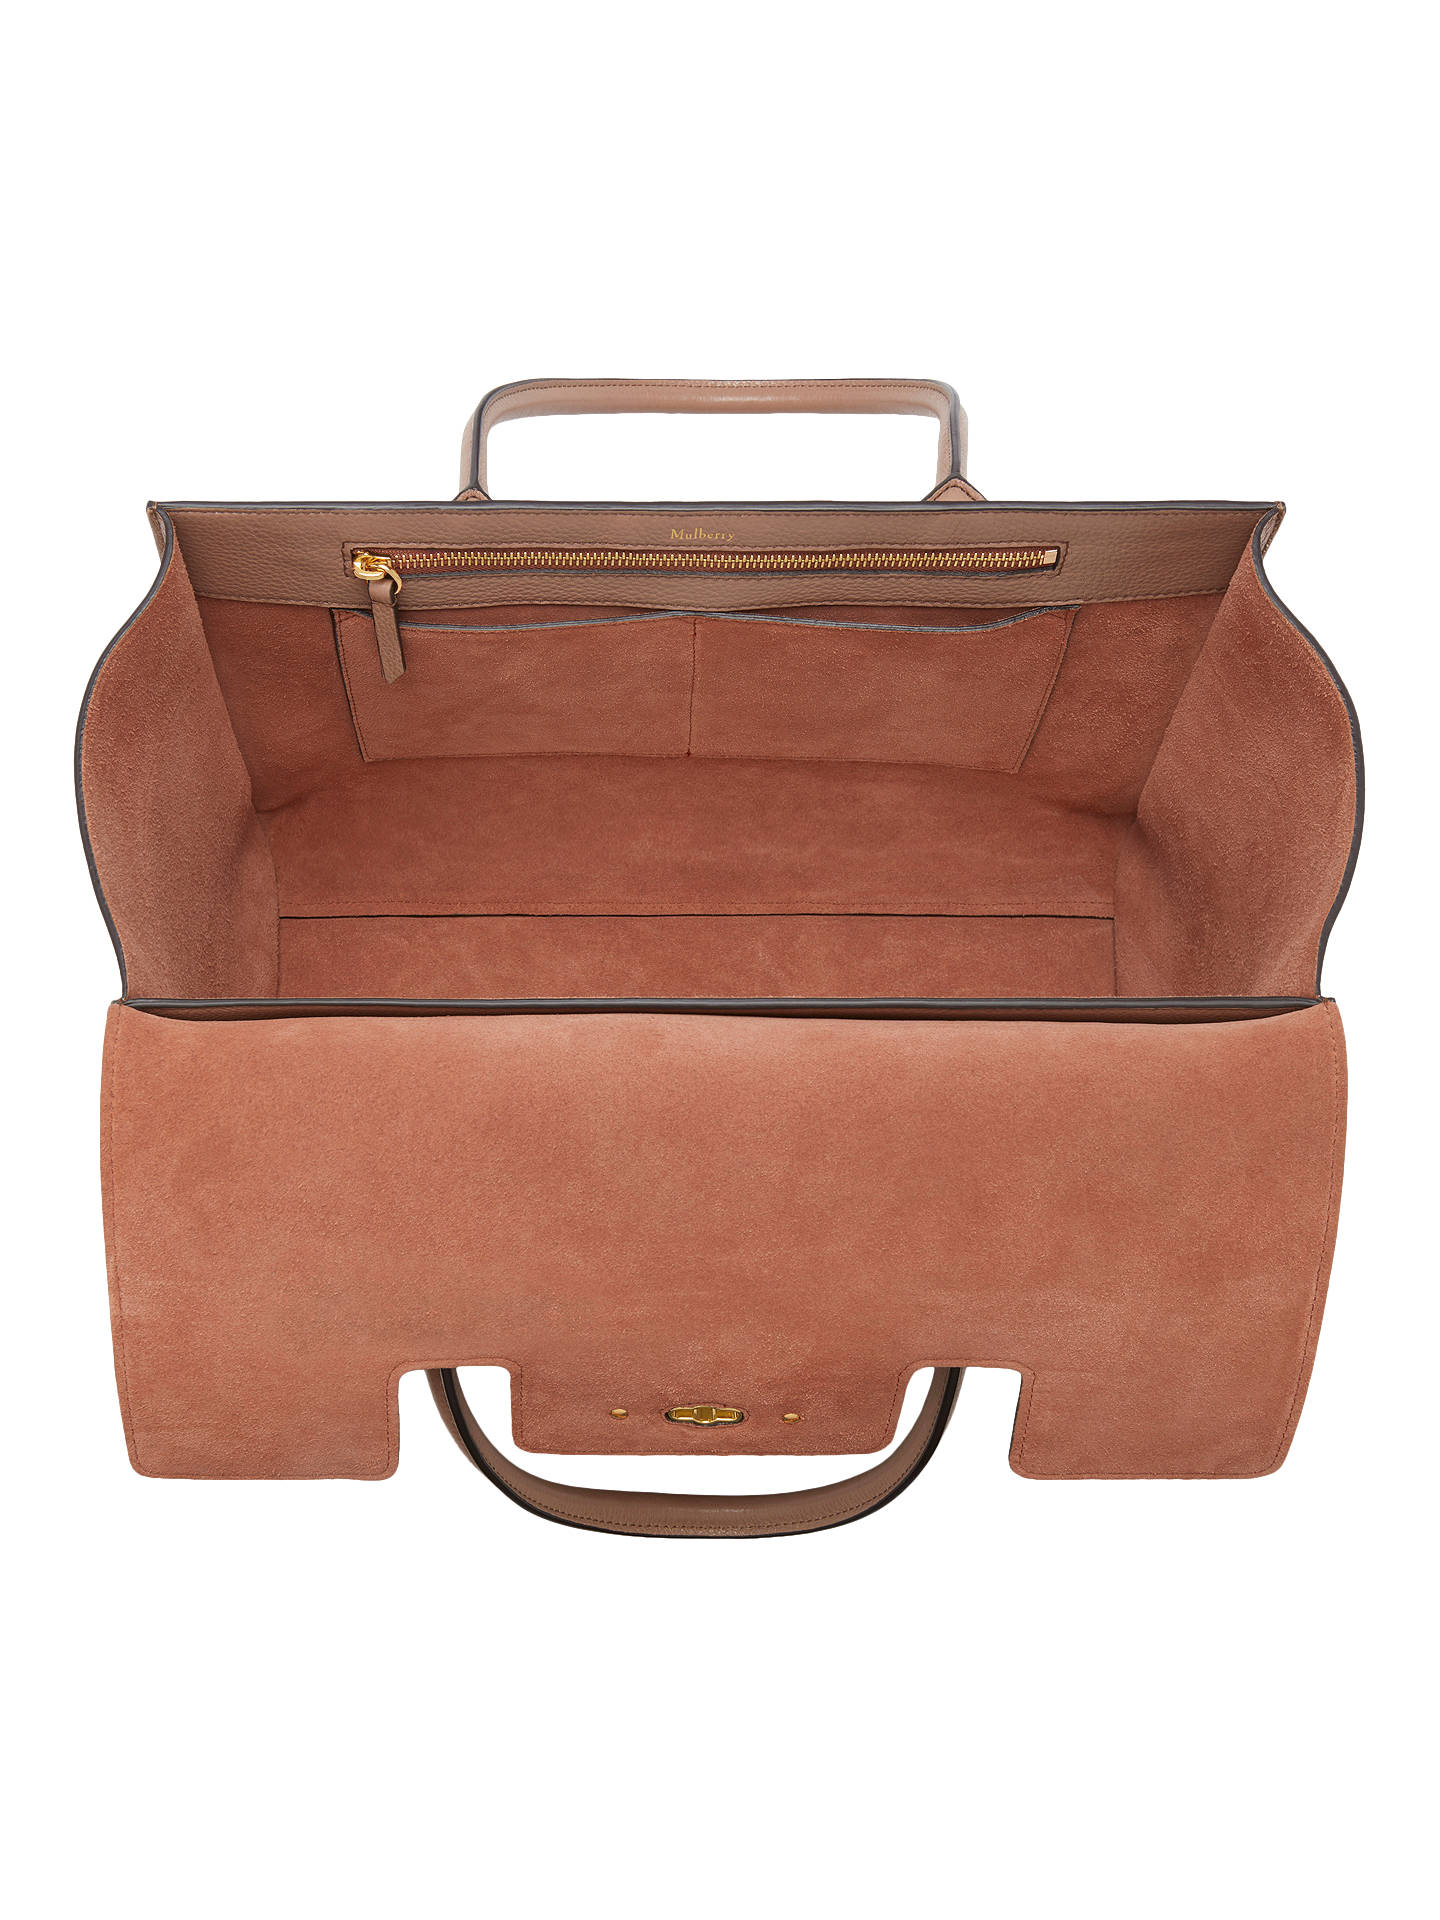 c6c4632a7e Buy Mulberry Bayswater New Classic Natural Grain Leather Bag